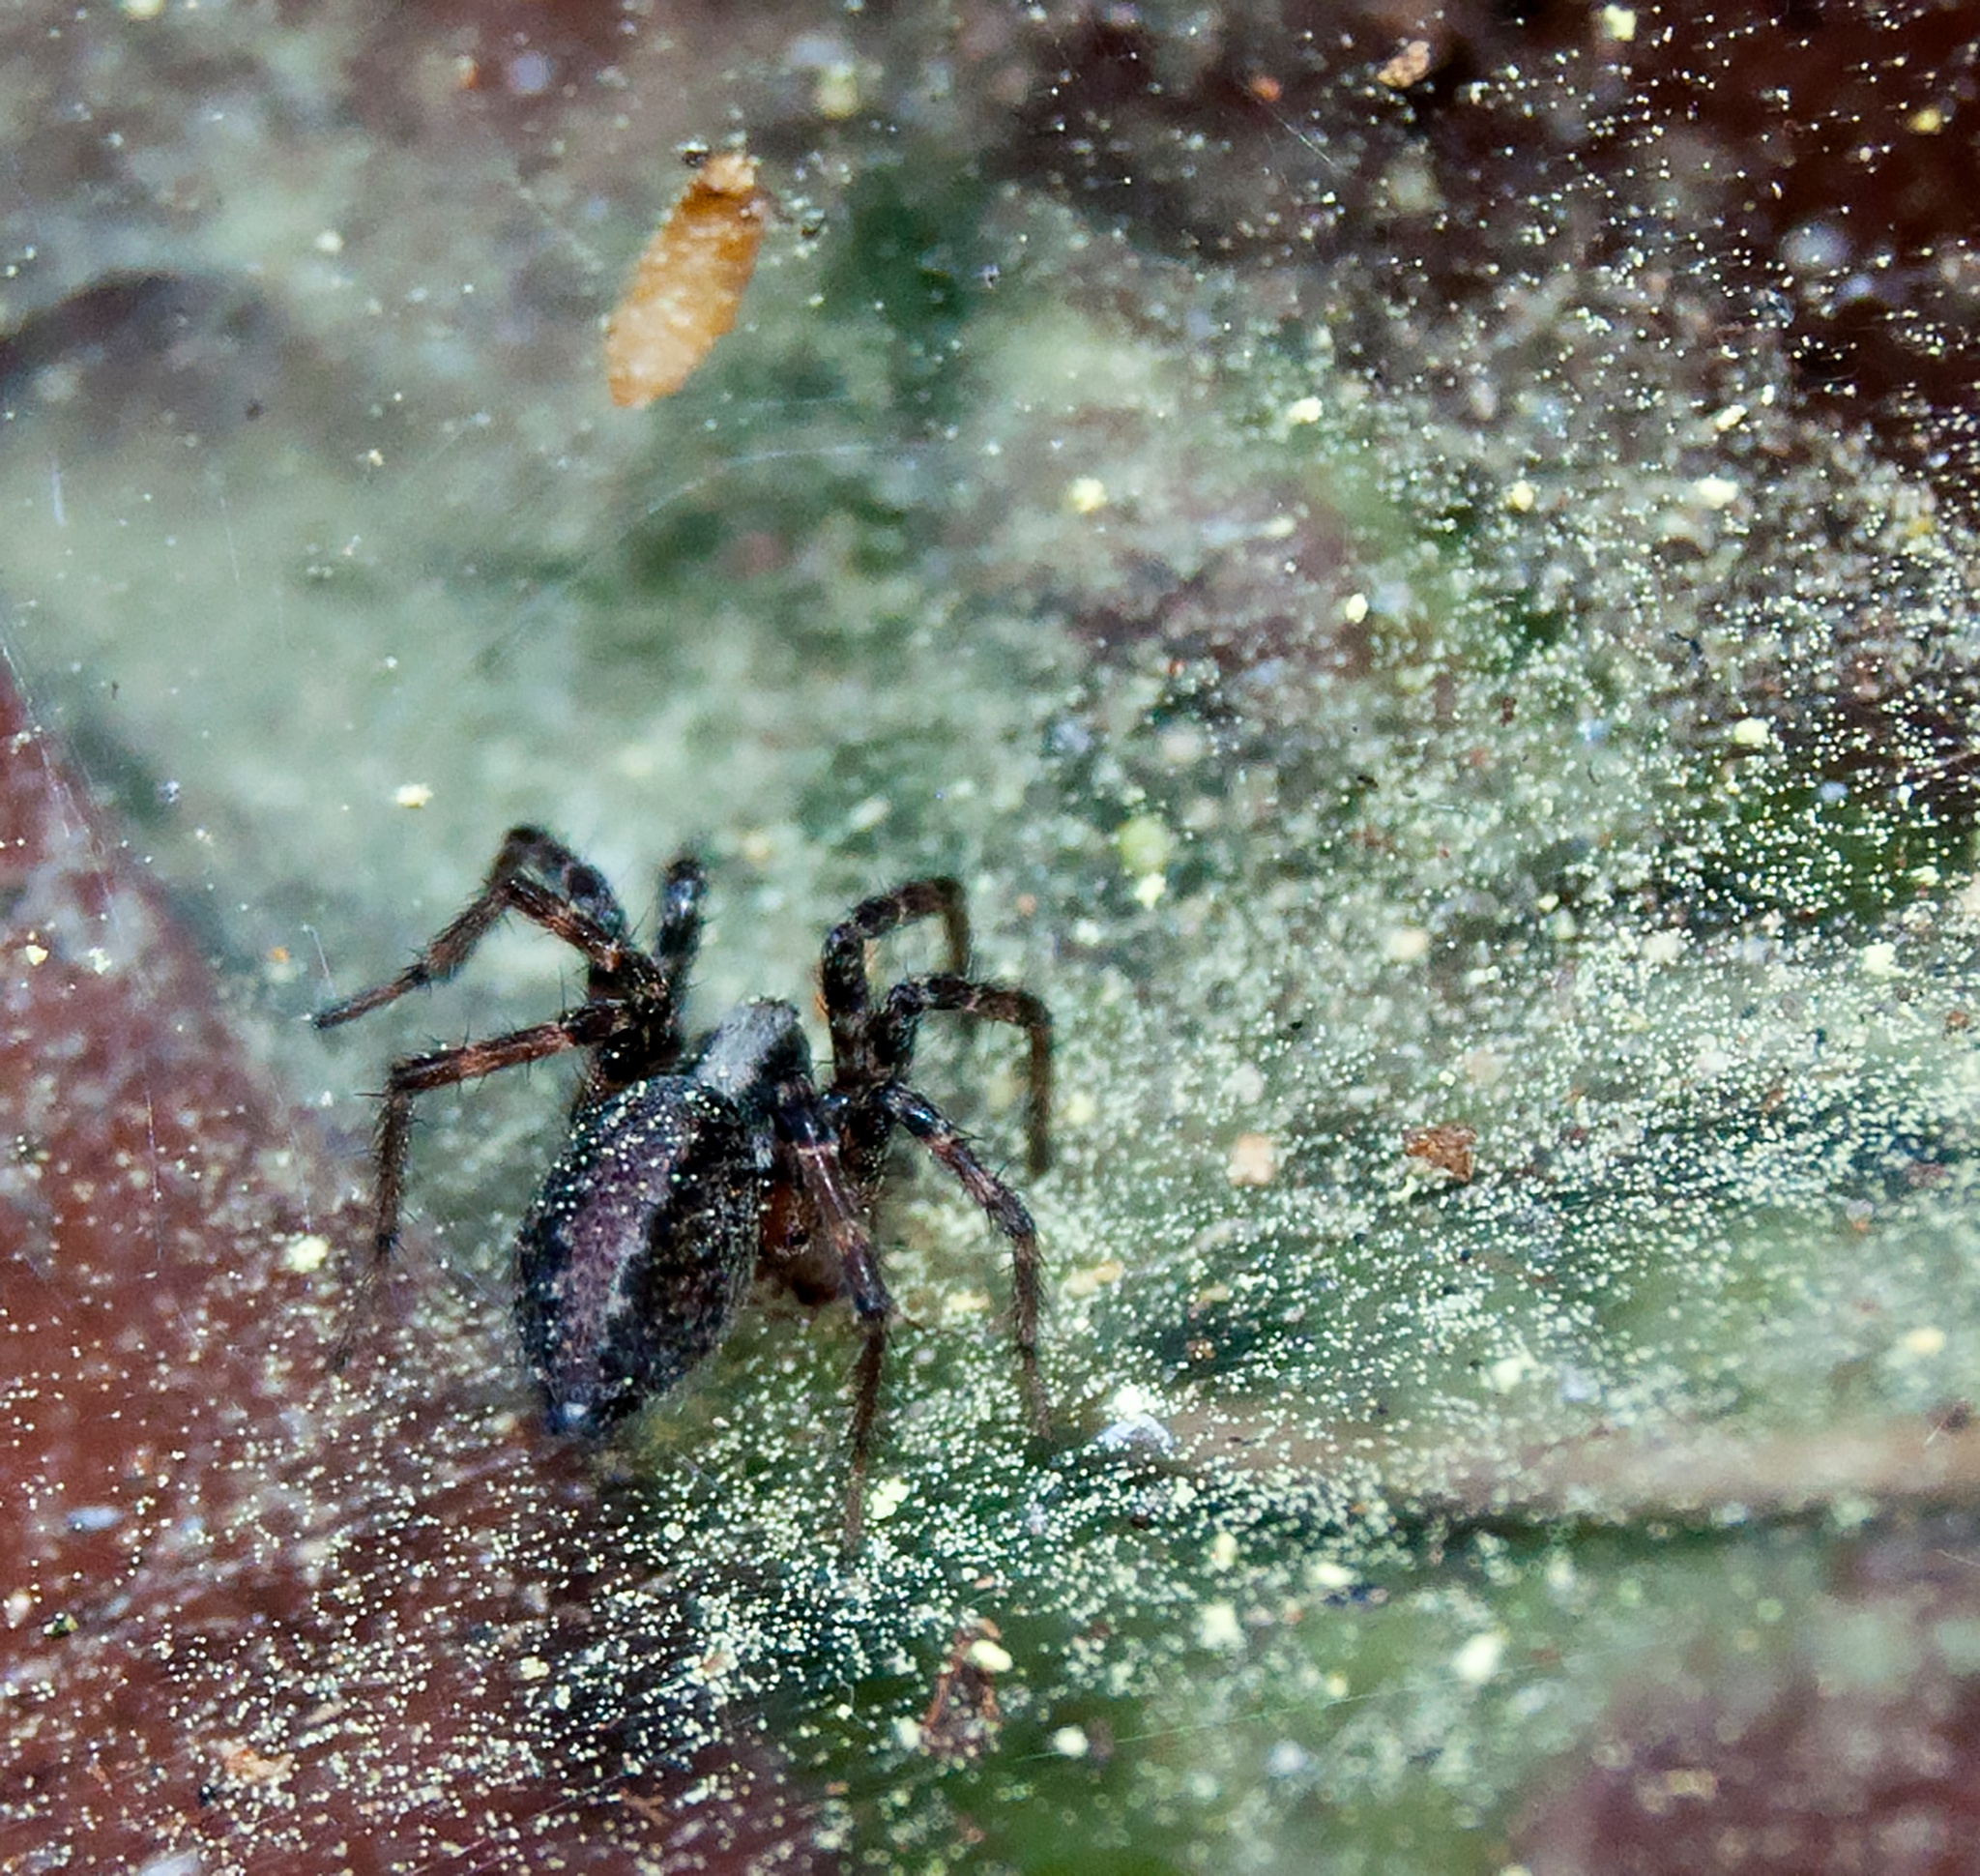 Spider by Neal Lacroix